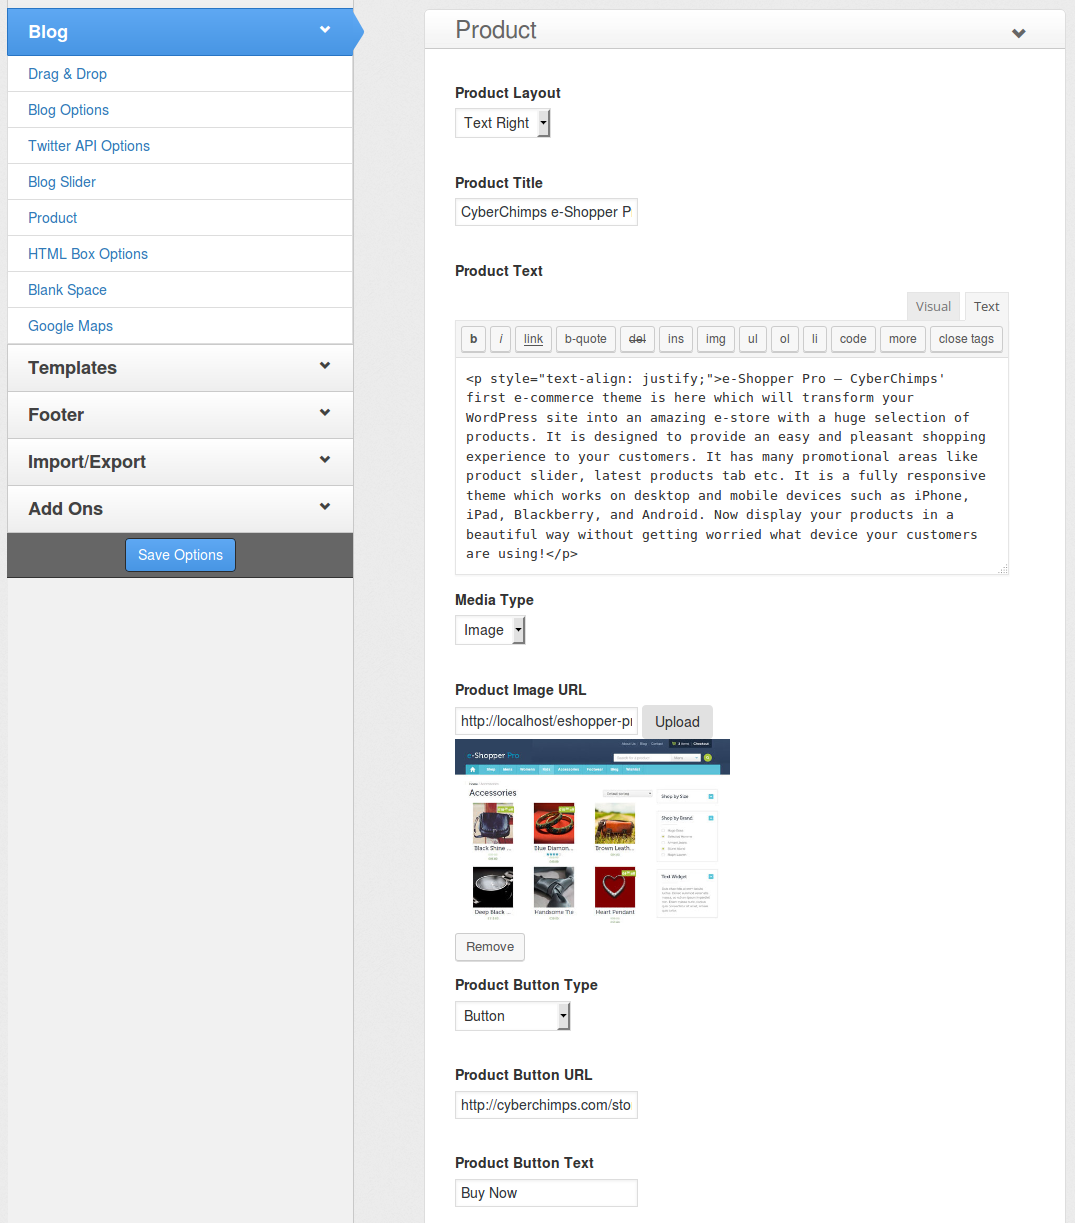 e-Shopper Pro - Blog Drag & Drop elements - Product